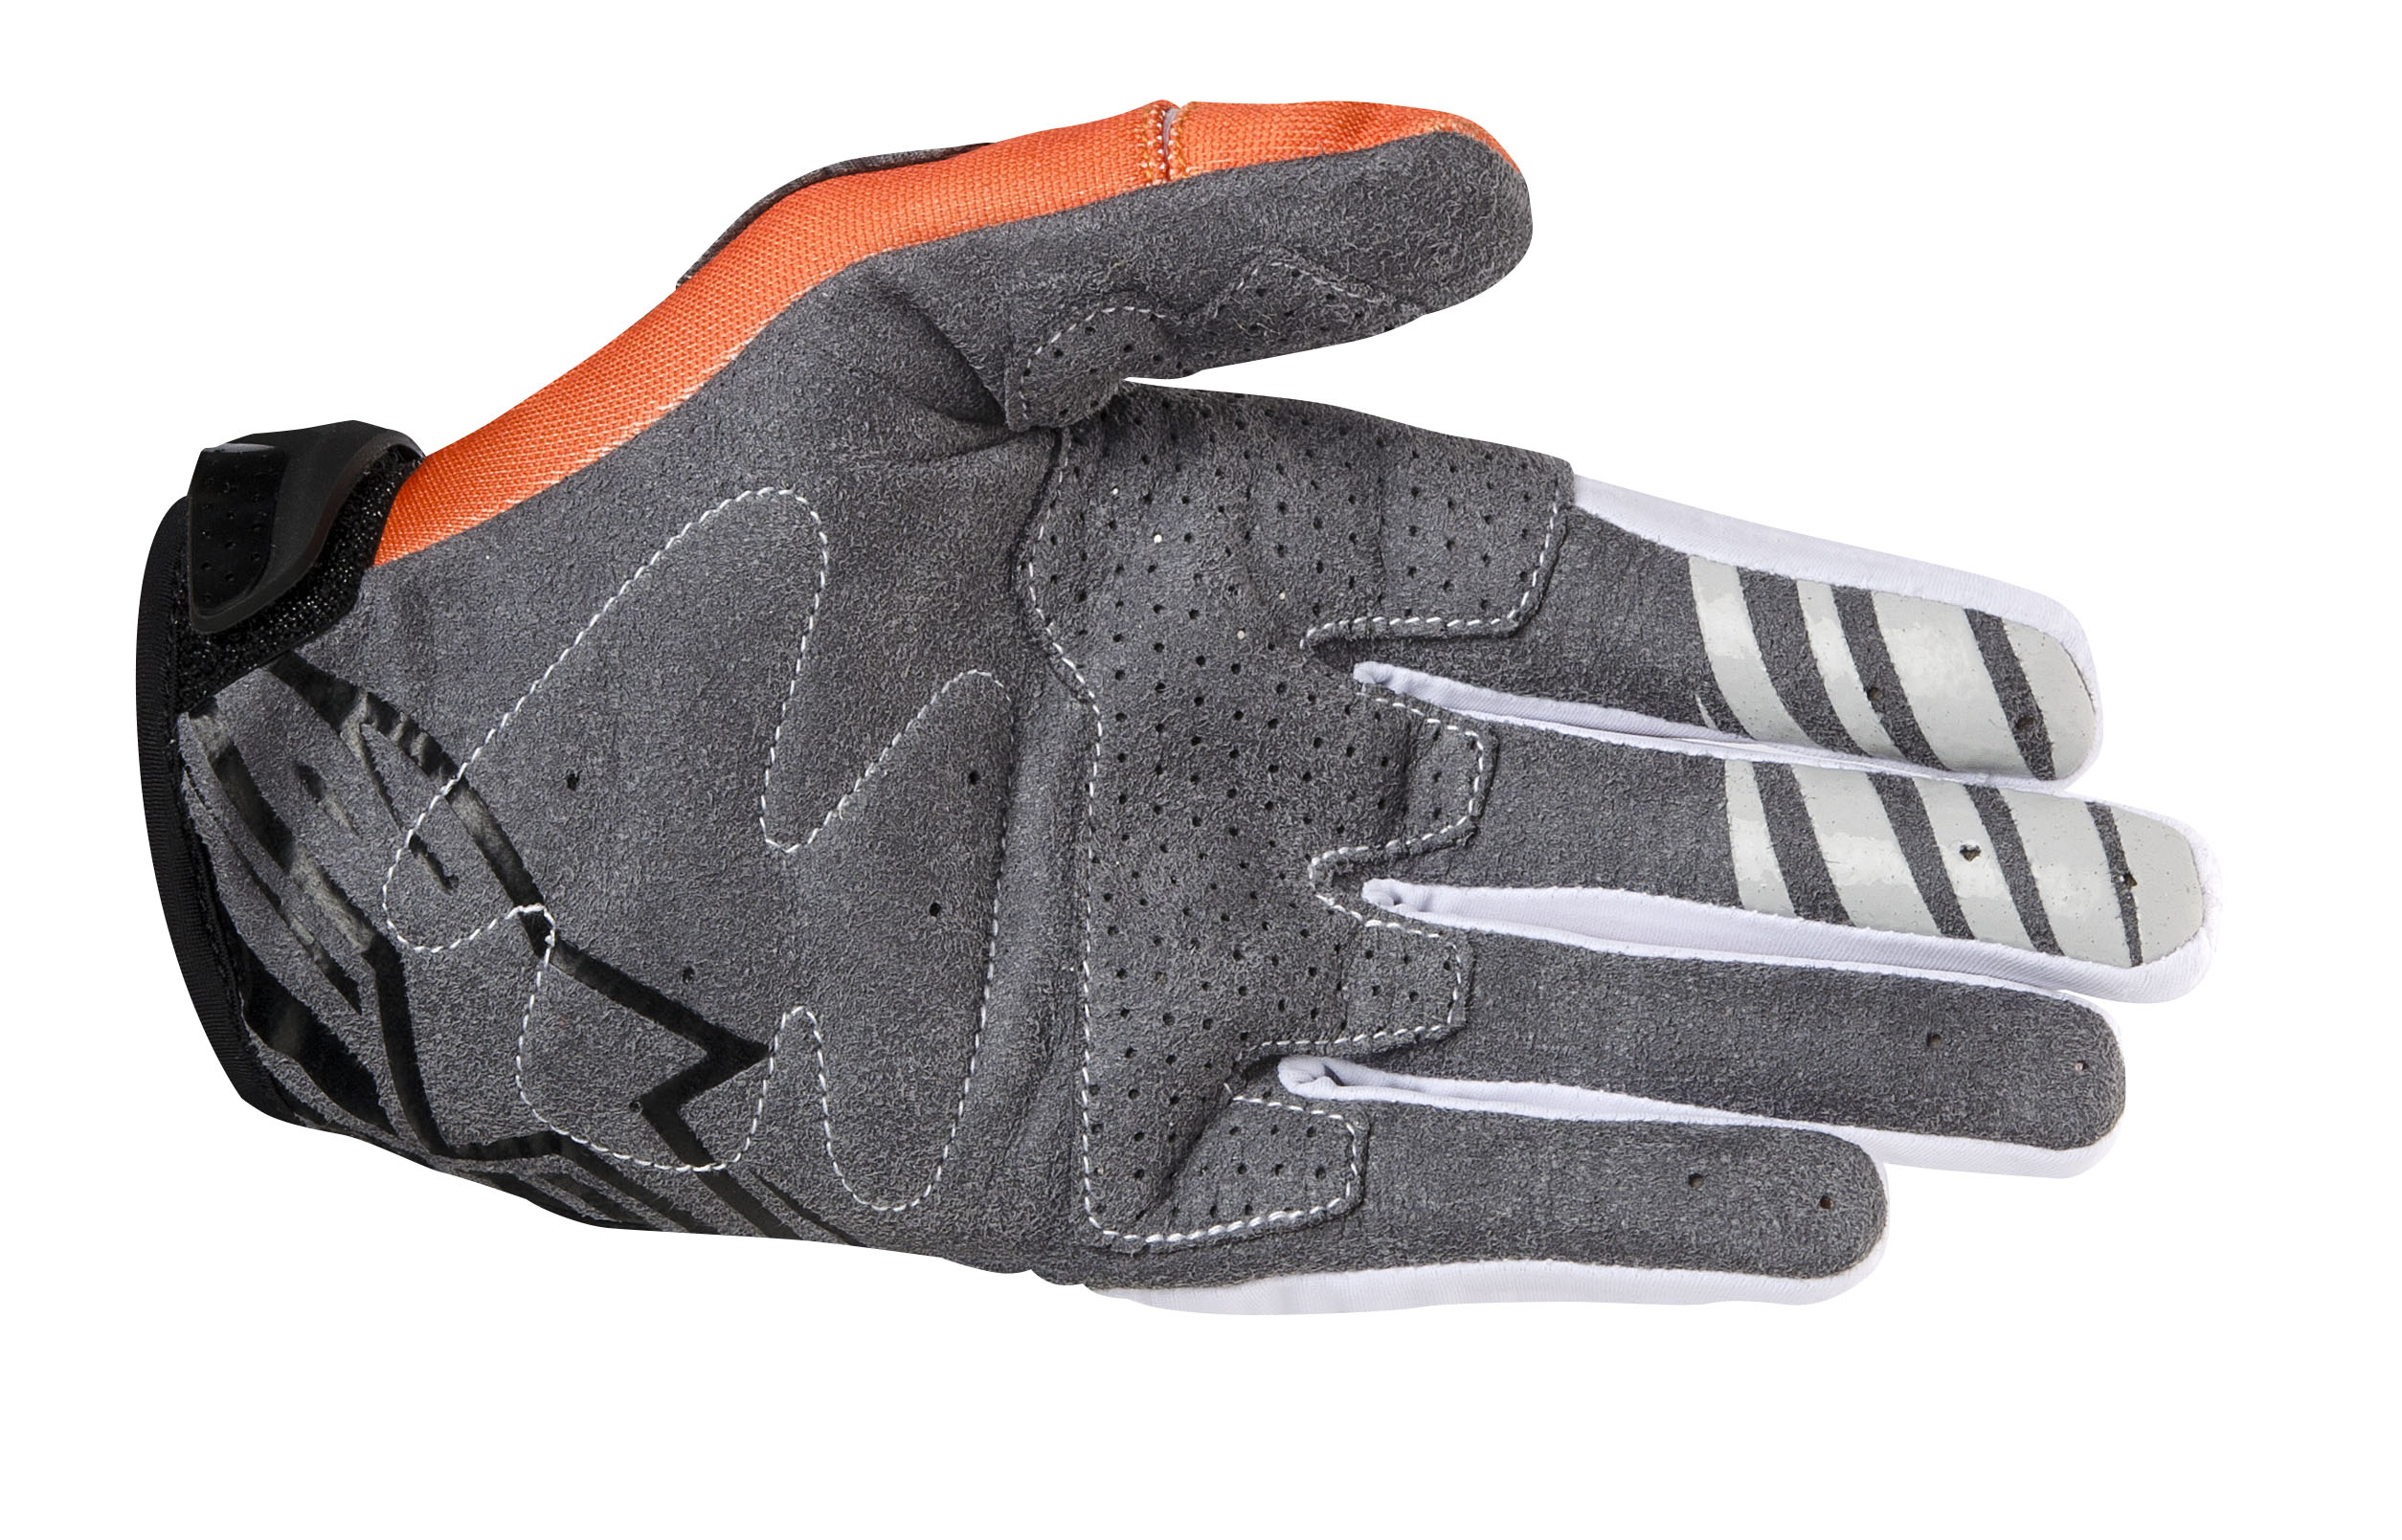 Techstar Glove 2014